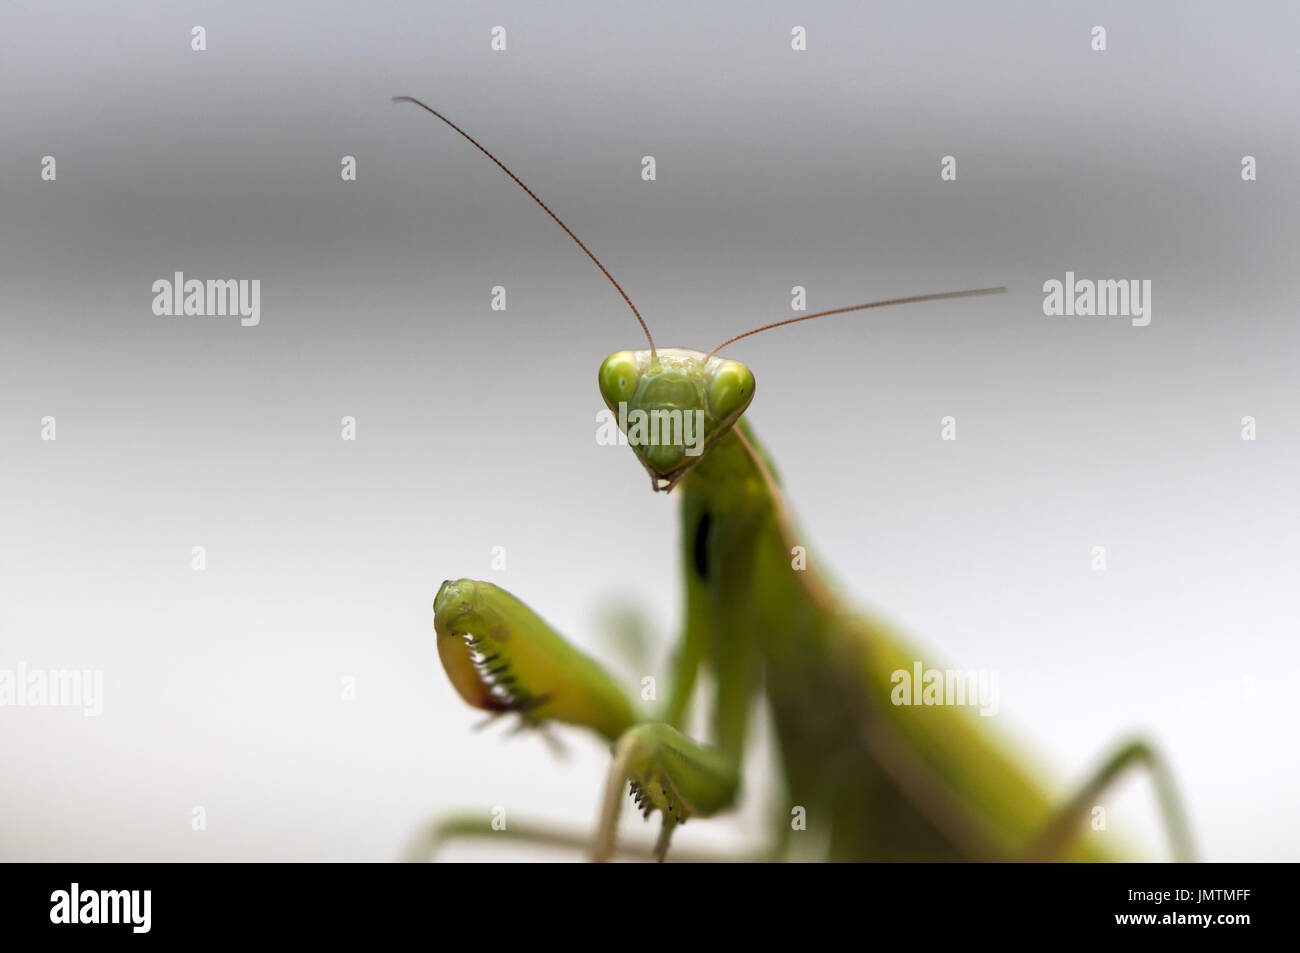 Closeup of a Praying Mantis. Shallow depth of field. - Stock Image